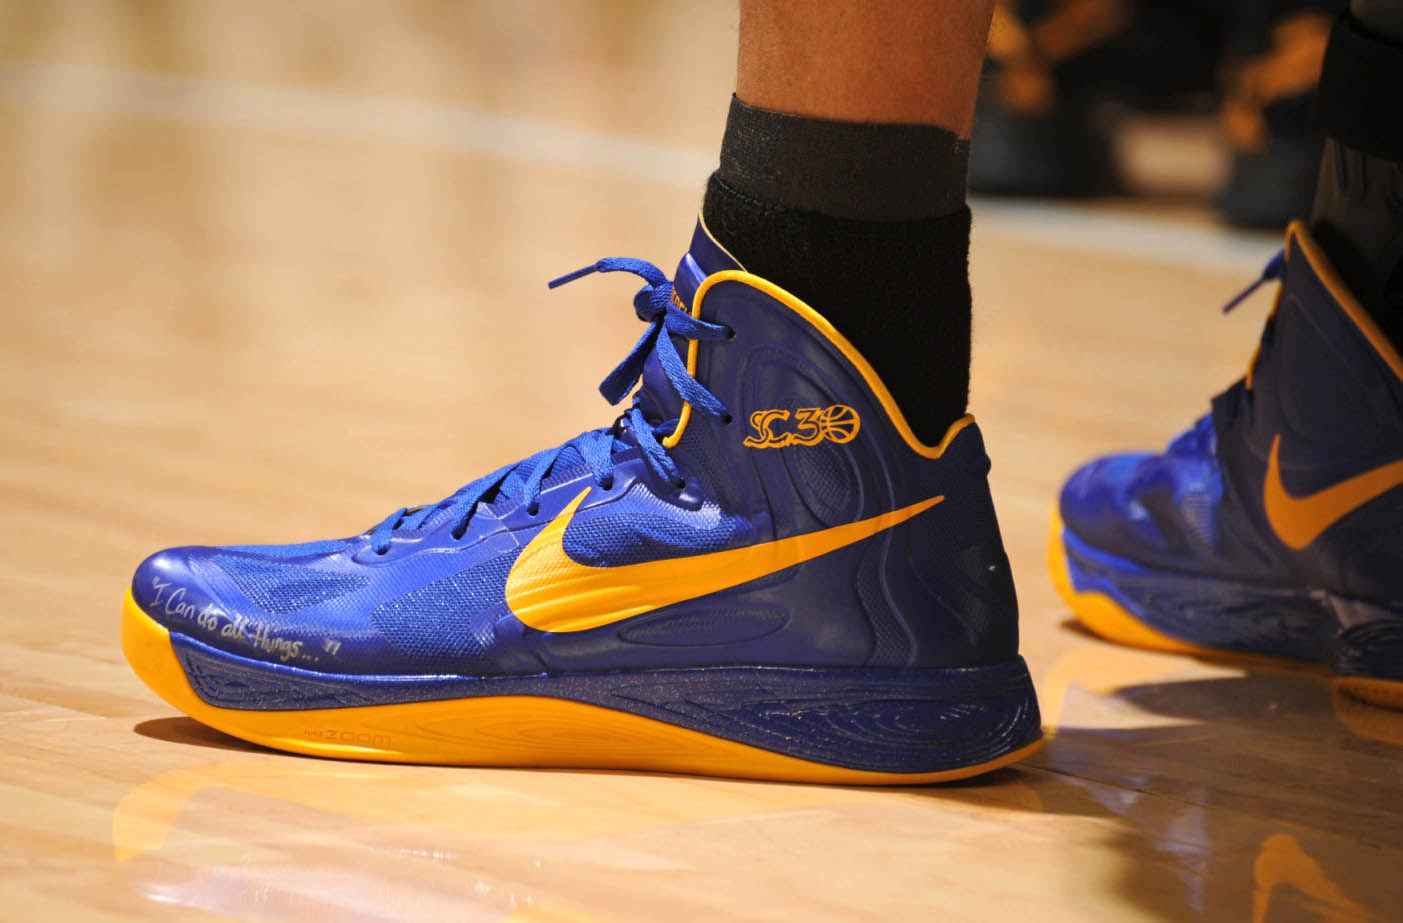 nike lunar hyperdunk stephen curry blue and yellow shoes